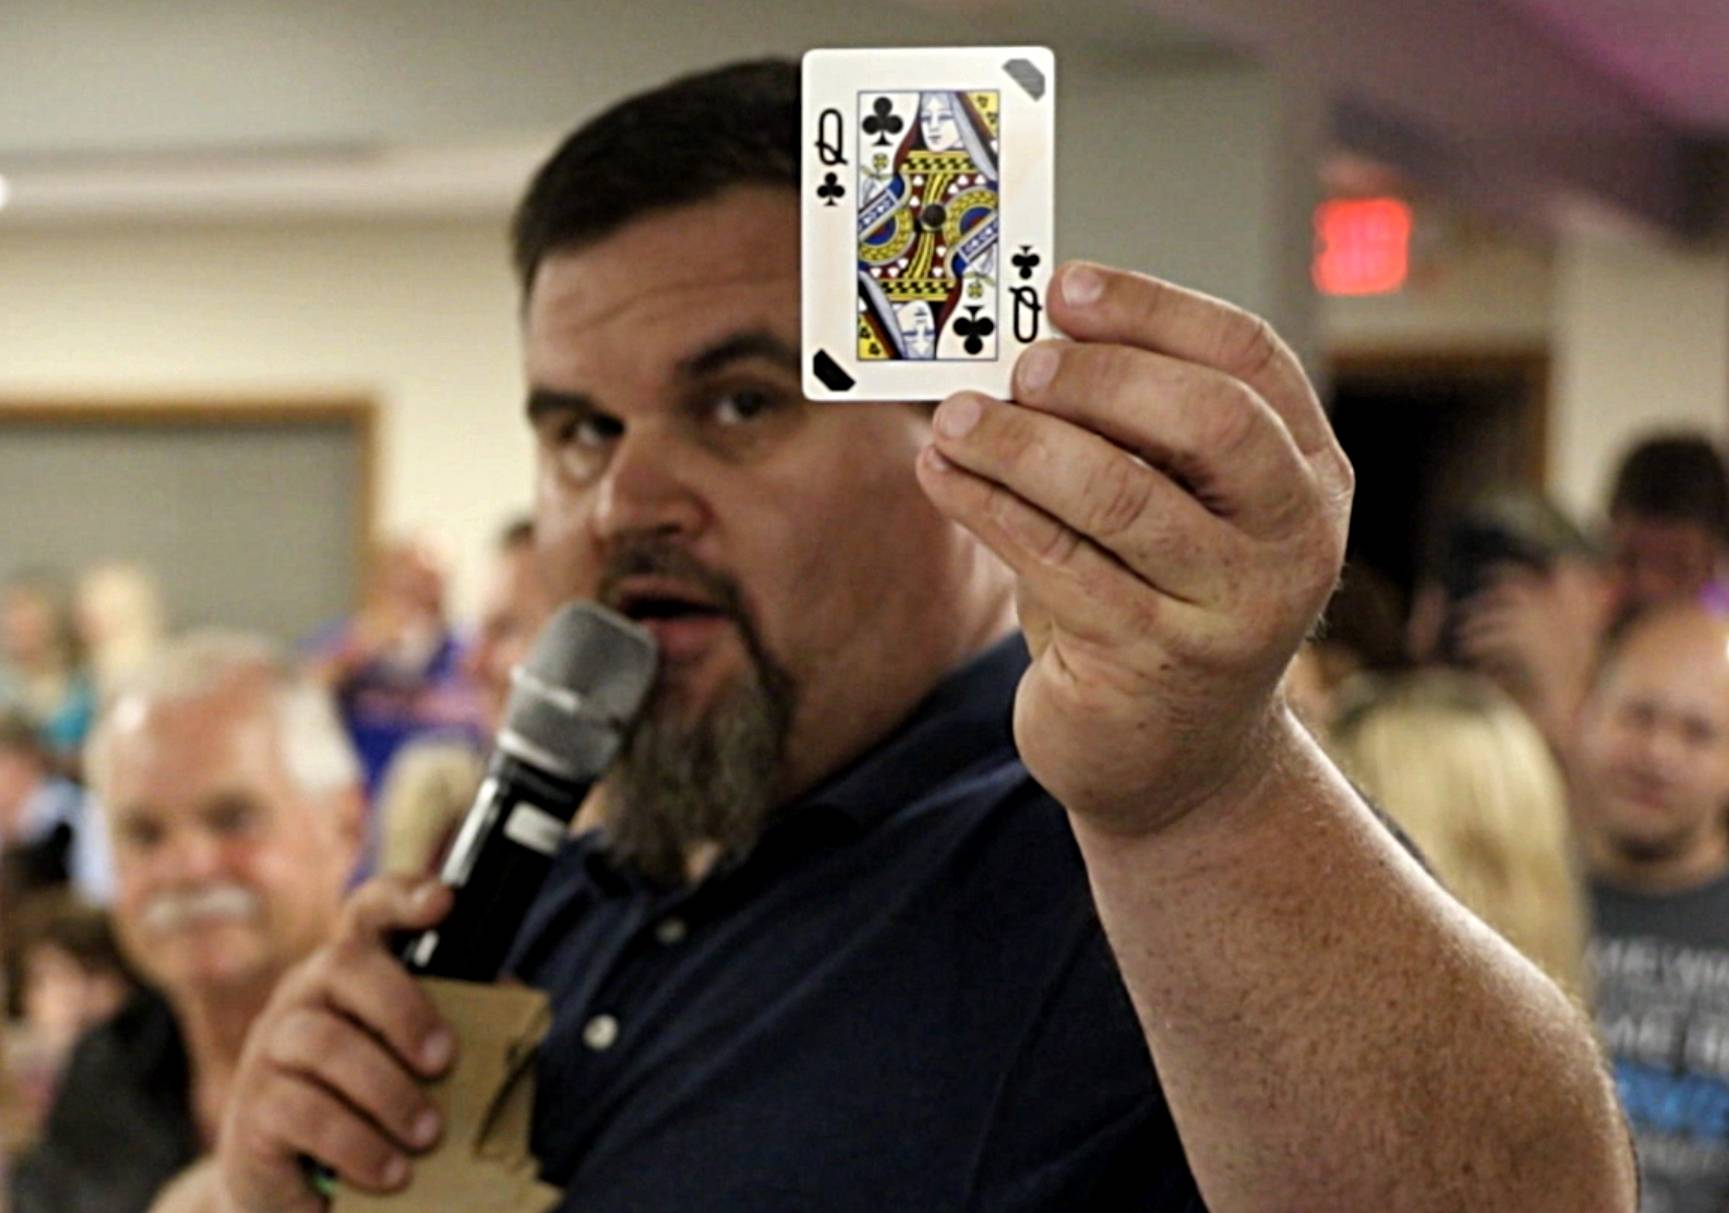 Queen of ... clubs (not hearts) drawn at McHenry VFW for $277,000 prize